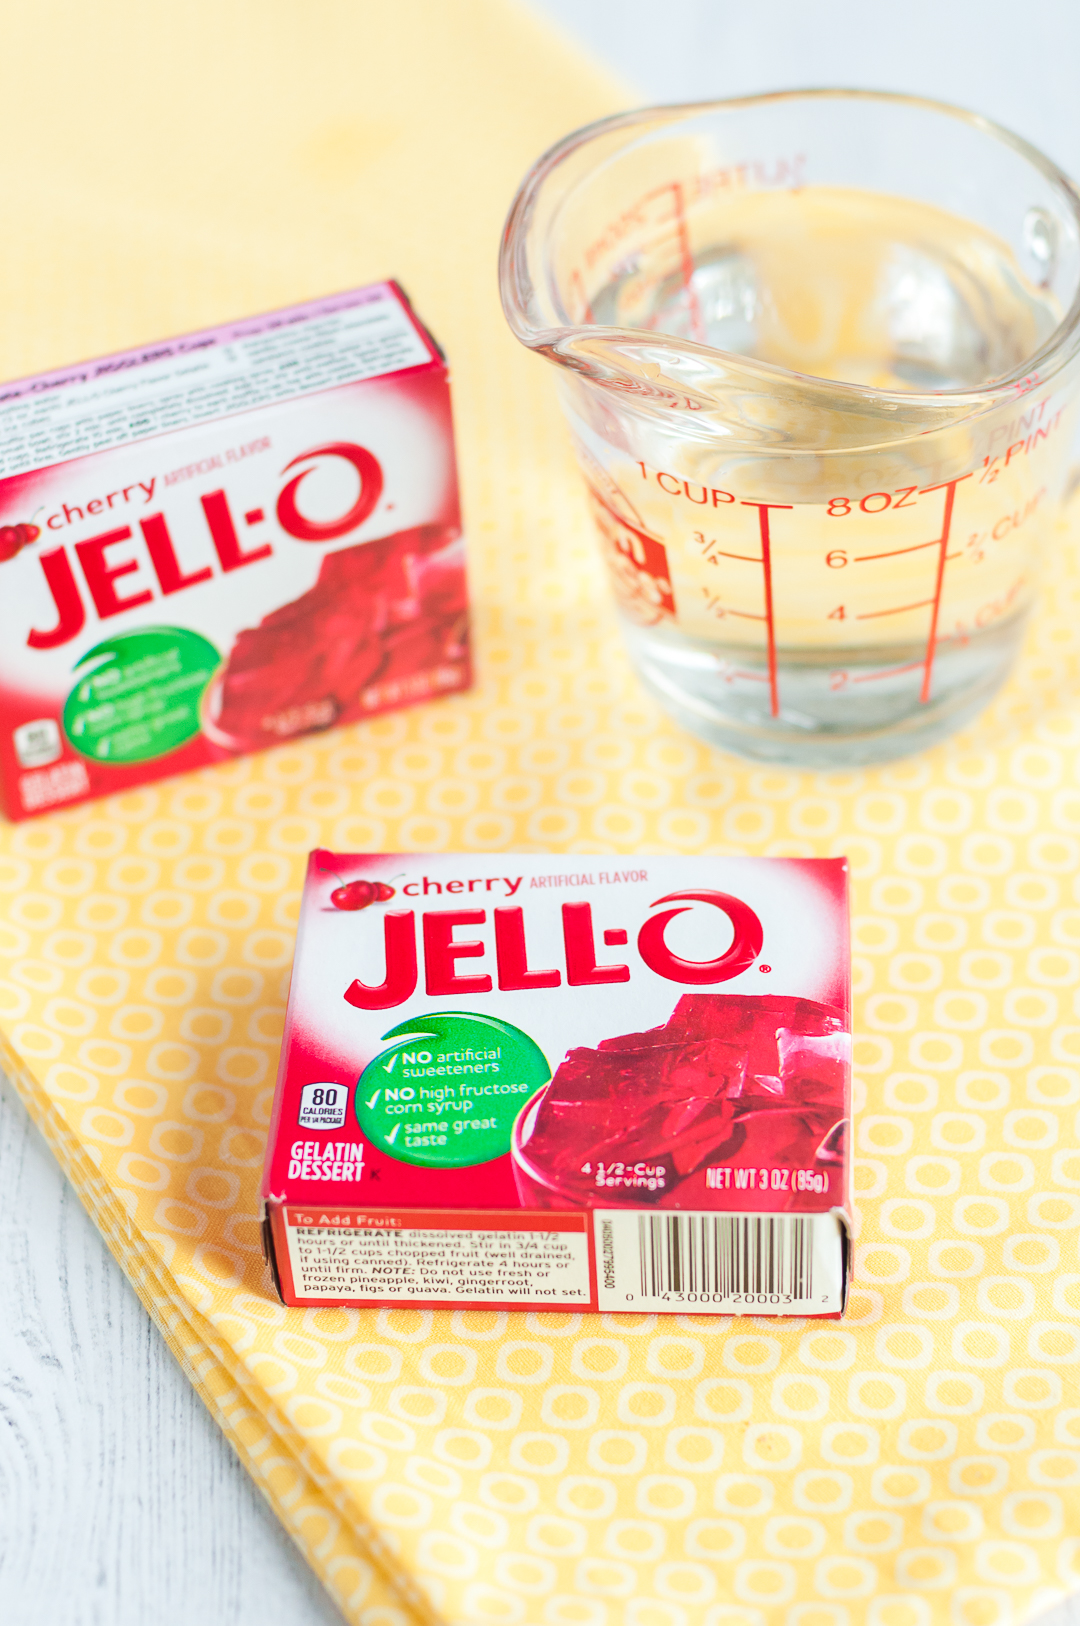 Cherry Jello Boxes